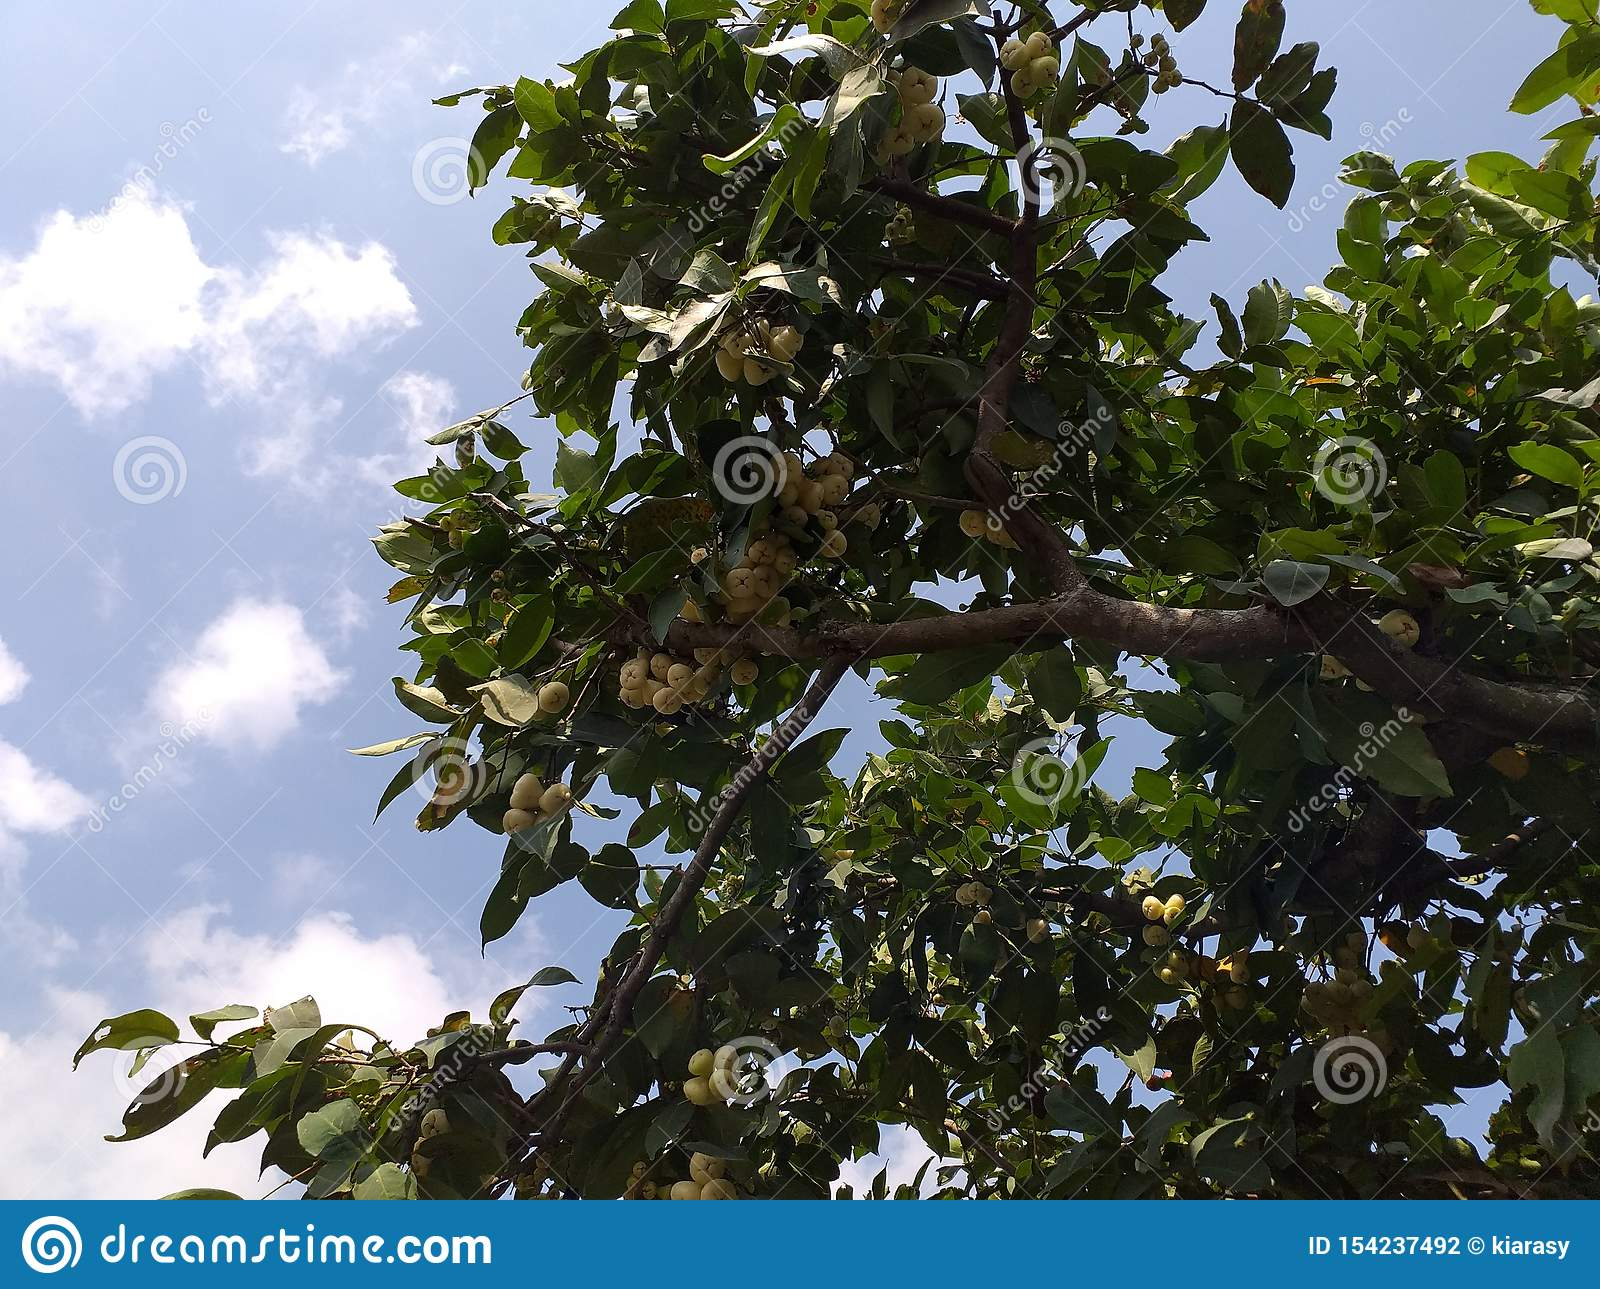 Water Guava Trees With Several Kinds Stock Photo - Image of